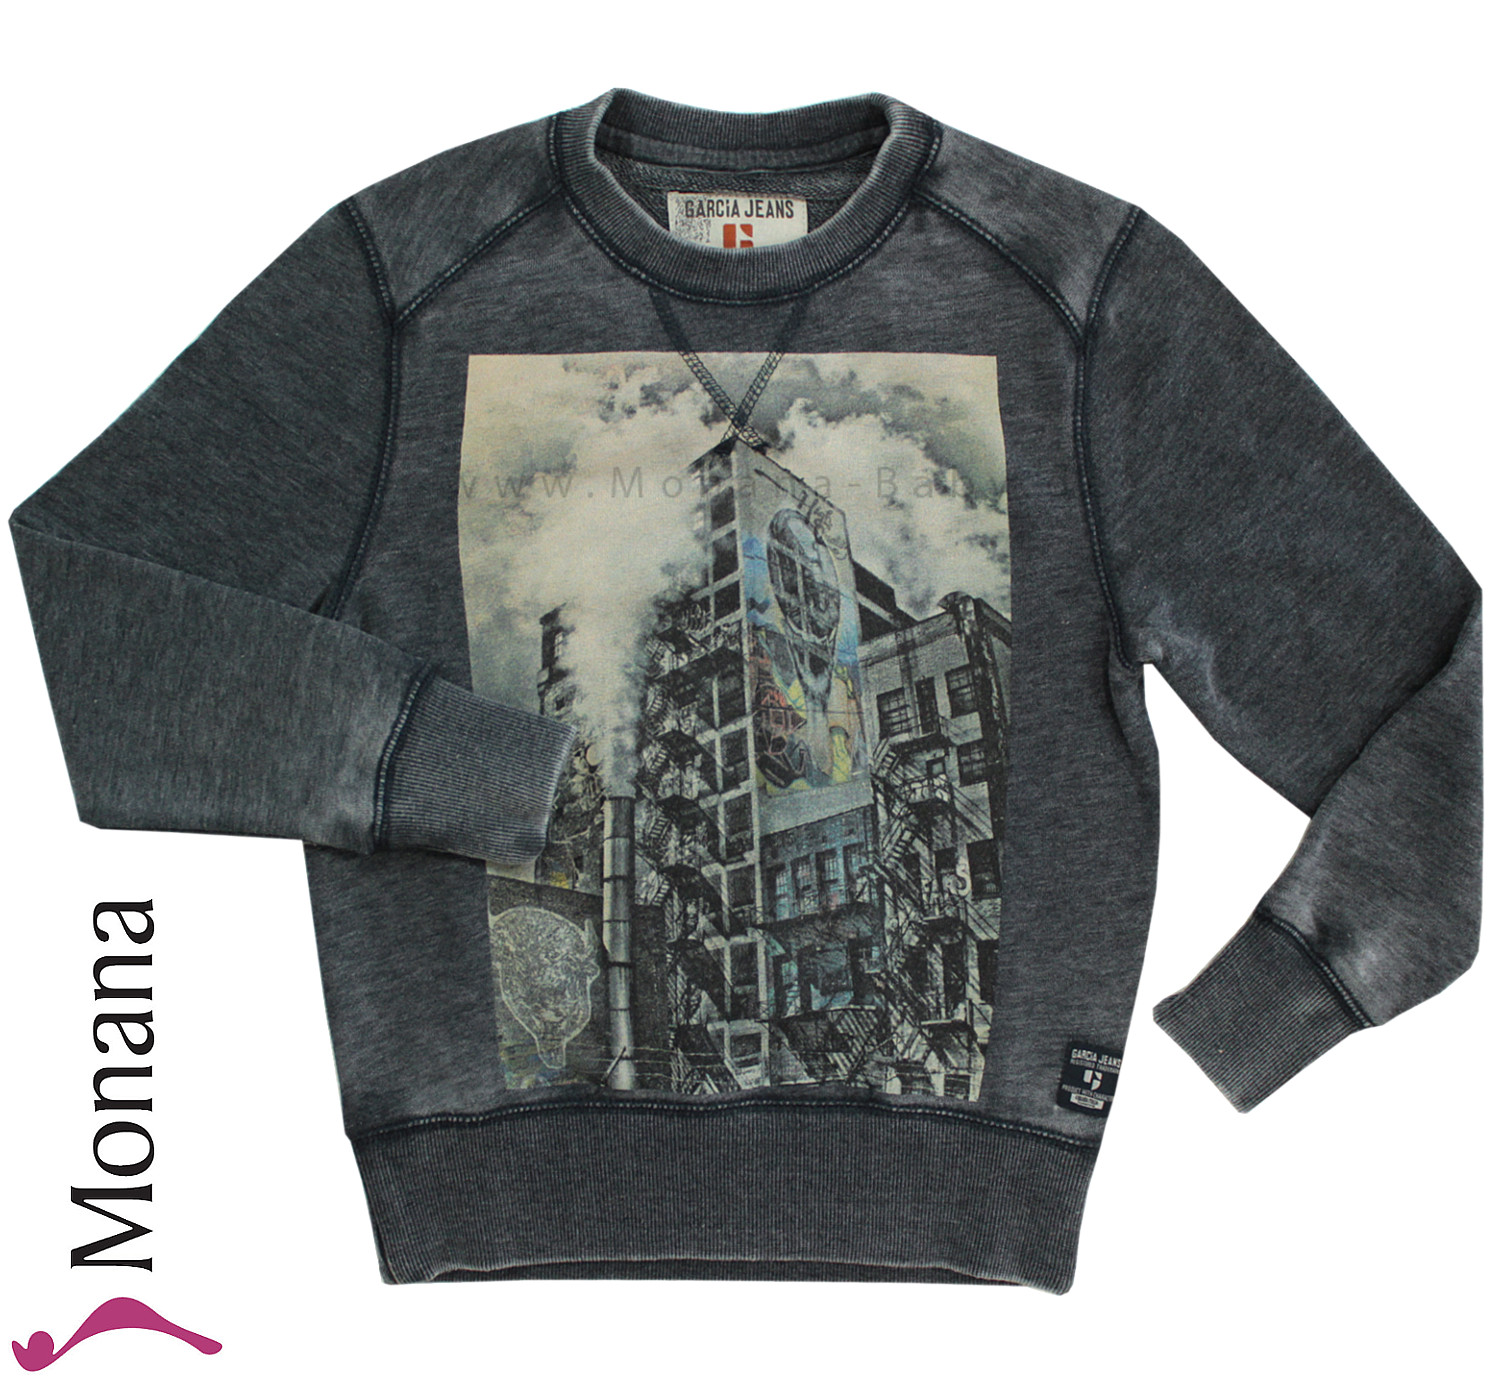 Garcia Sweater Shirt dim grey<br>Größe: 128/134, 152/158